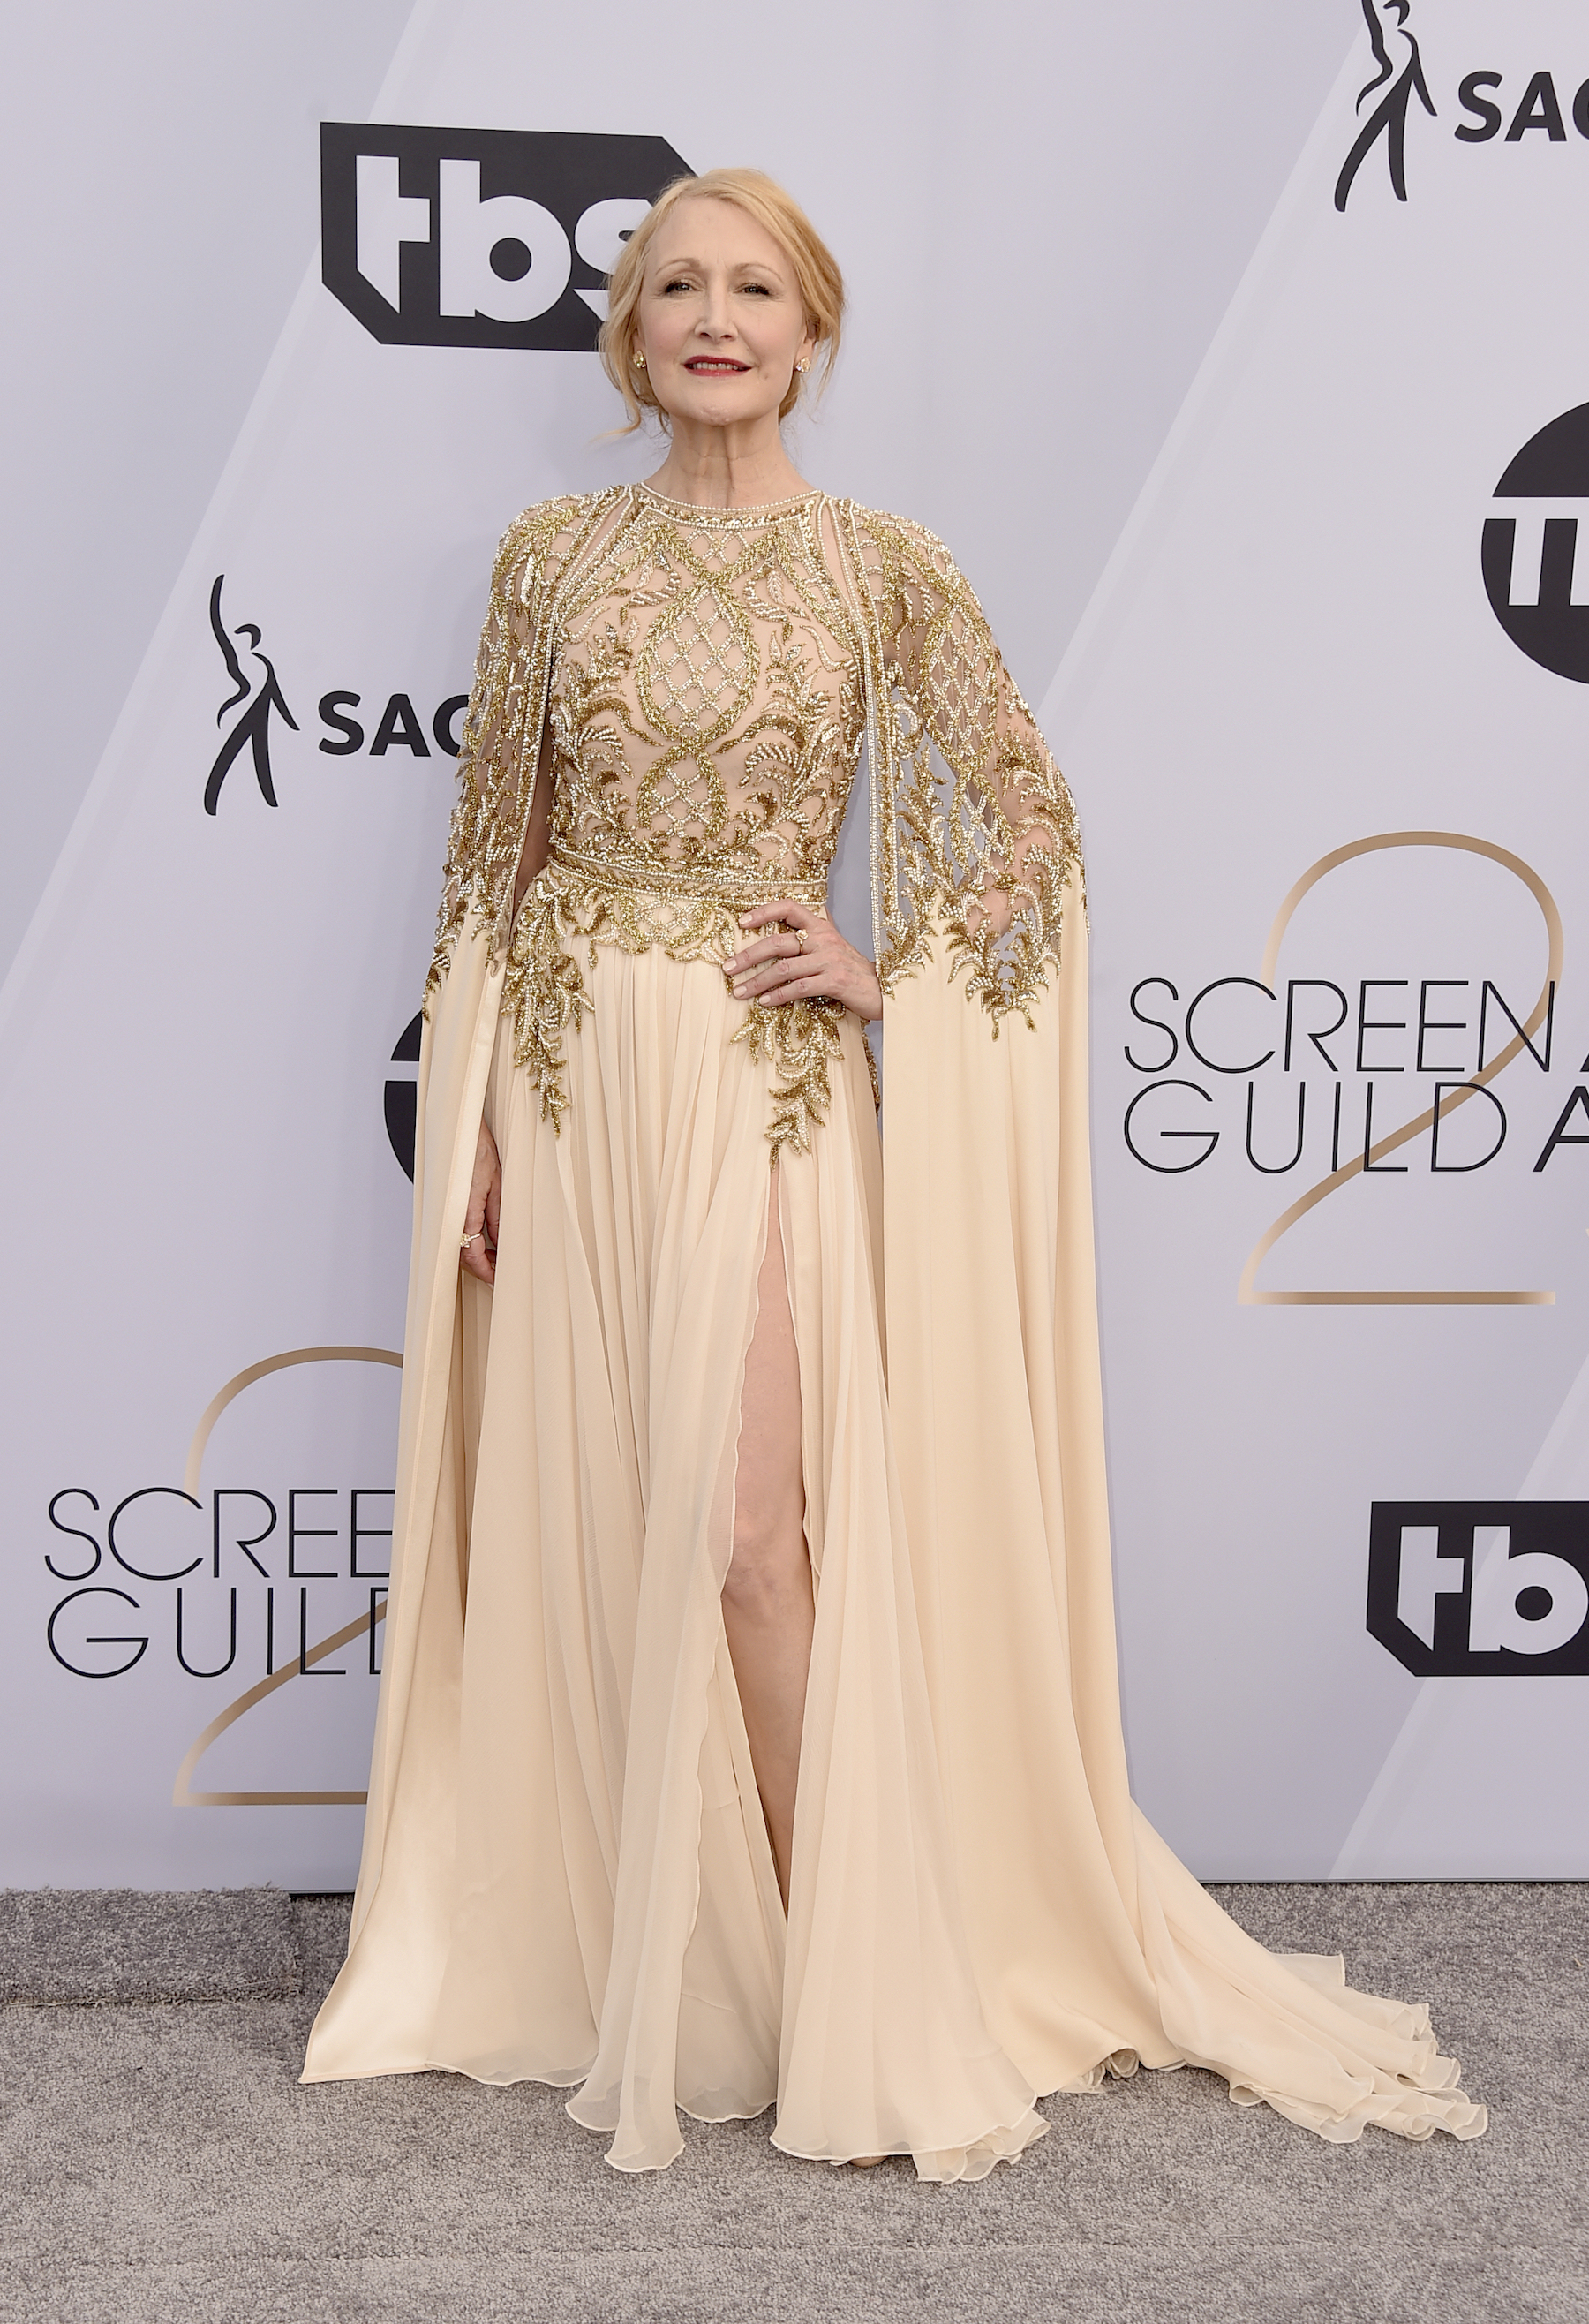 <div class='meta'><div class='origin-logo' data-origin='AP'></div><span class='caption-text' data-credit='Jordan Strauss/Invision/AP'>Patricia Clarkson arrives at the 25th annual Screen Actors Guild Awards at the Shrine Auditorium & Expo Hall on Sunday, Jan. 27, 2019, in Los Angeles.</span></div>